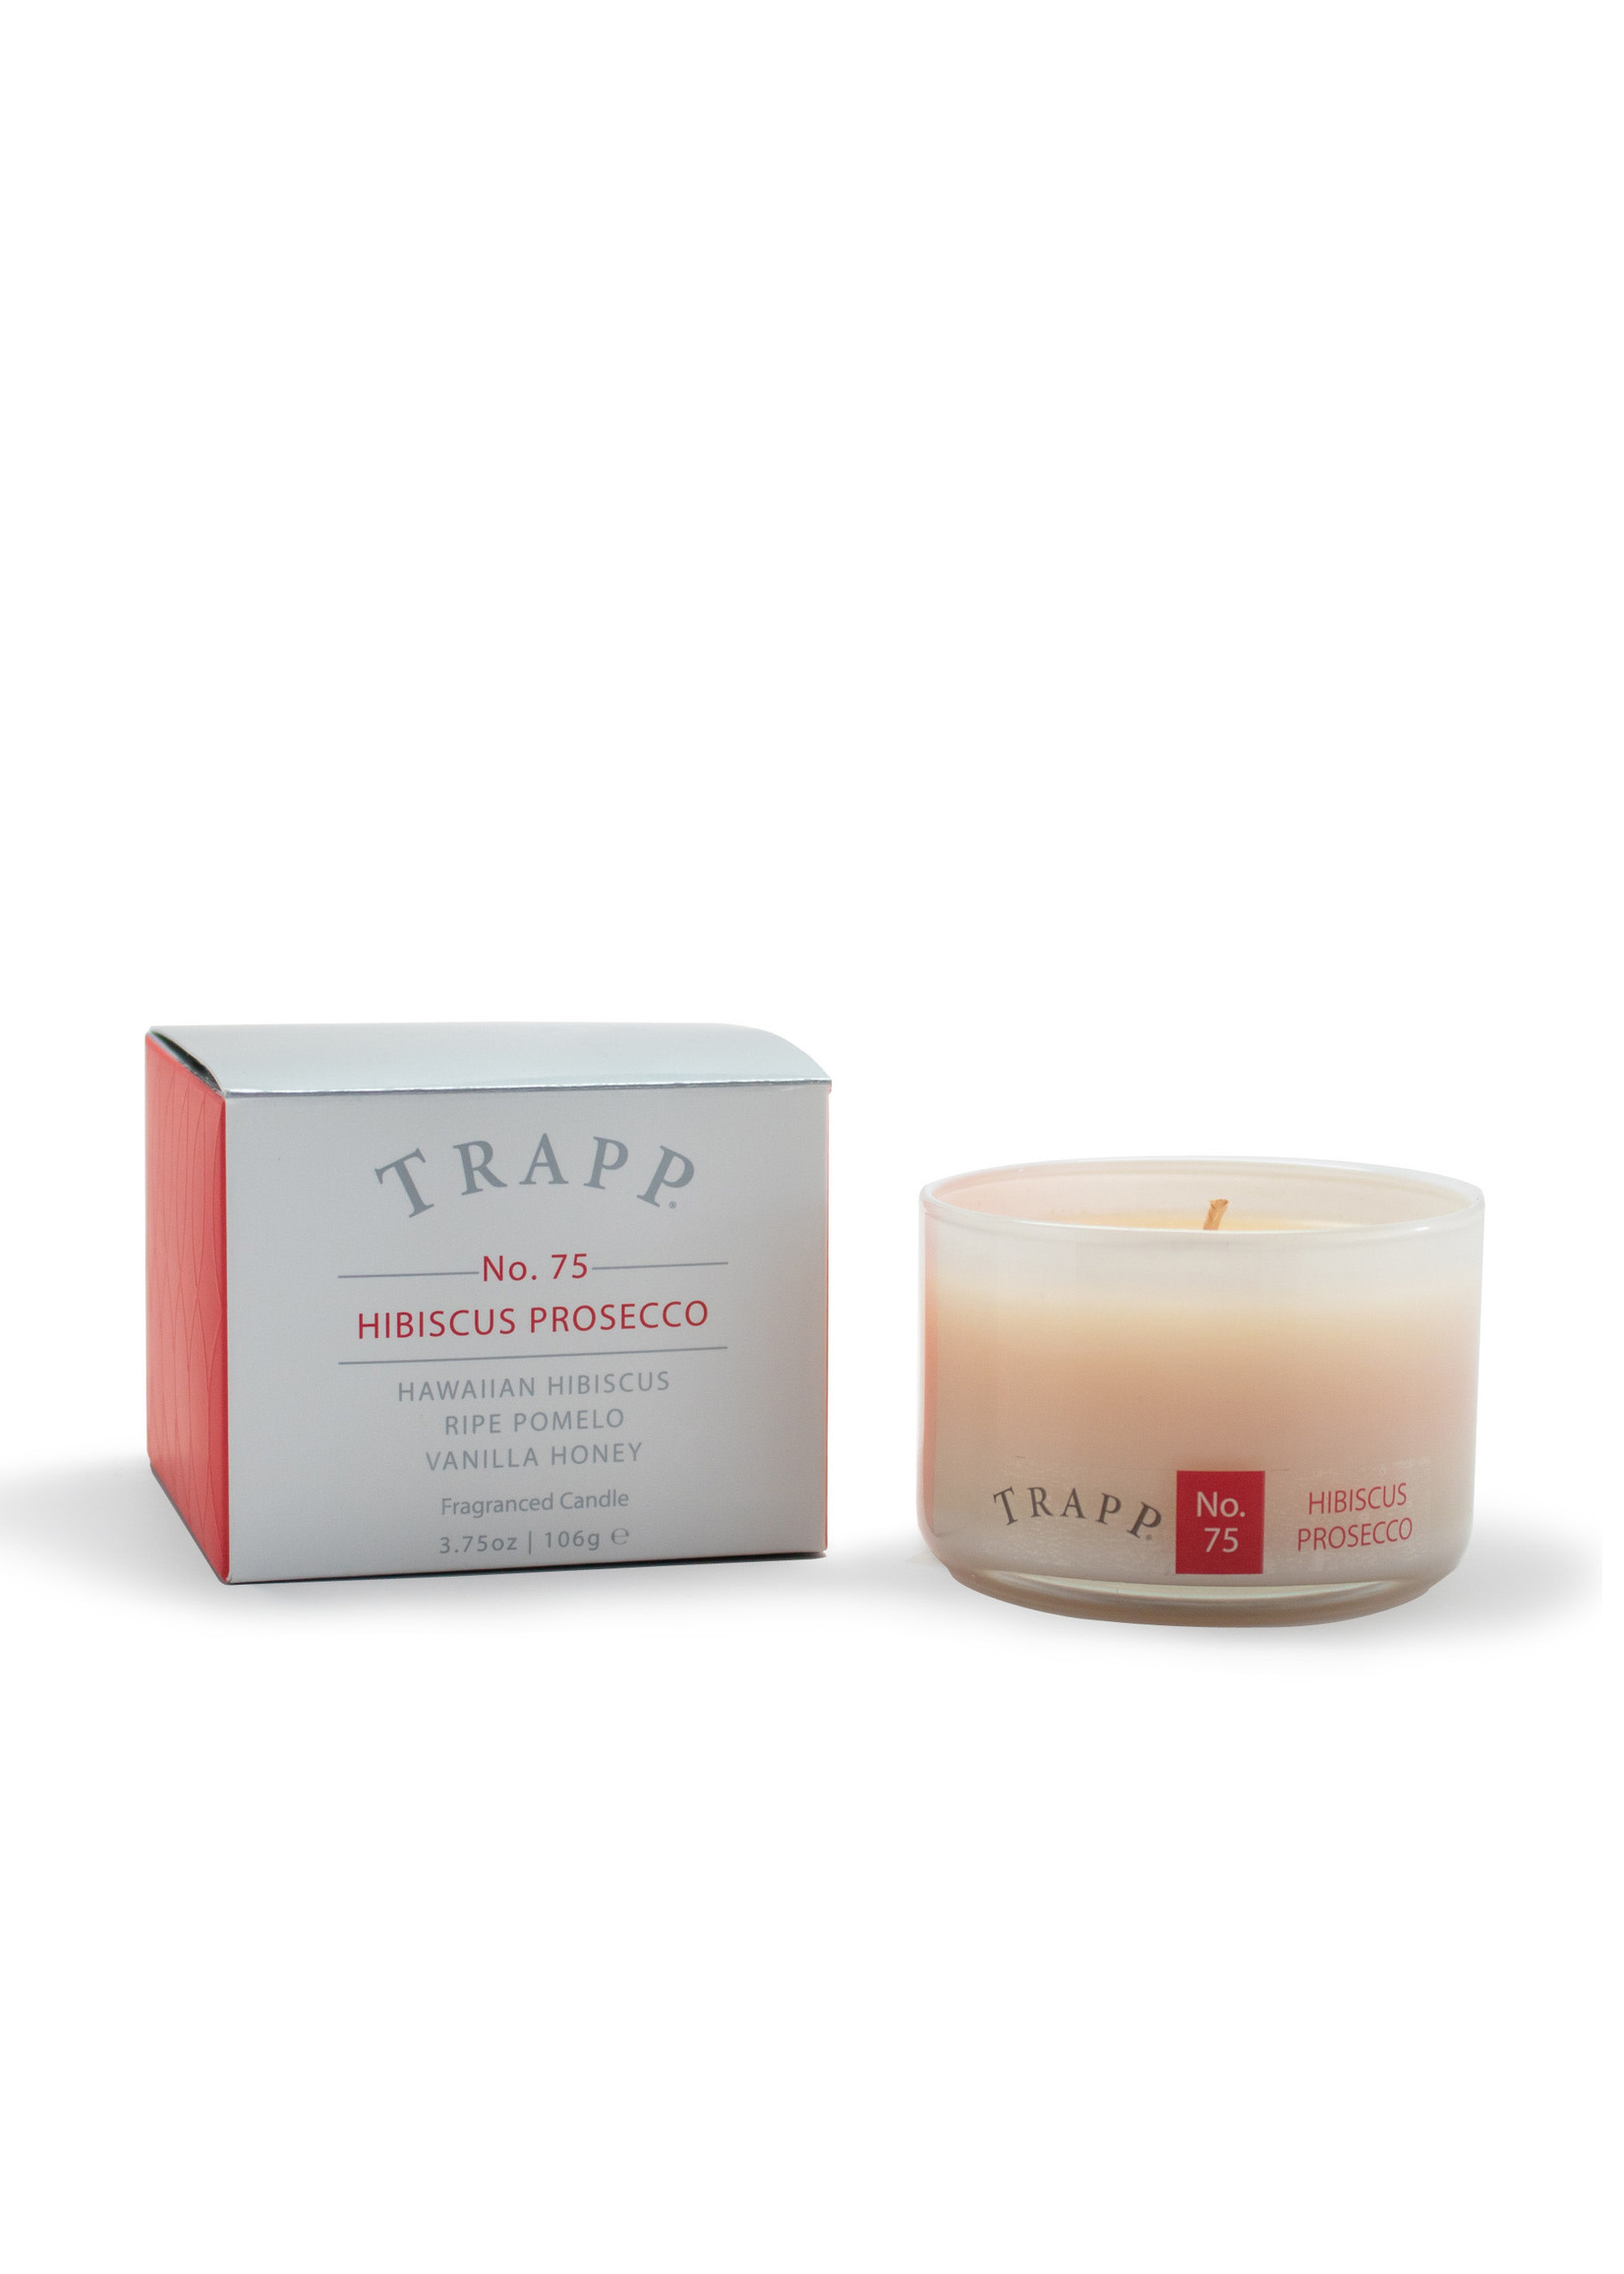 Trapp Candles Ambiance Collection - No. 75 Hibiscus Prosecco - 3.75 oz. Poured Candle